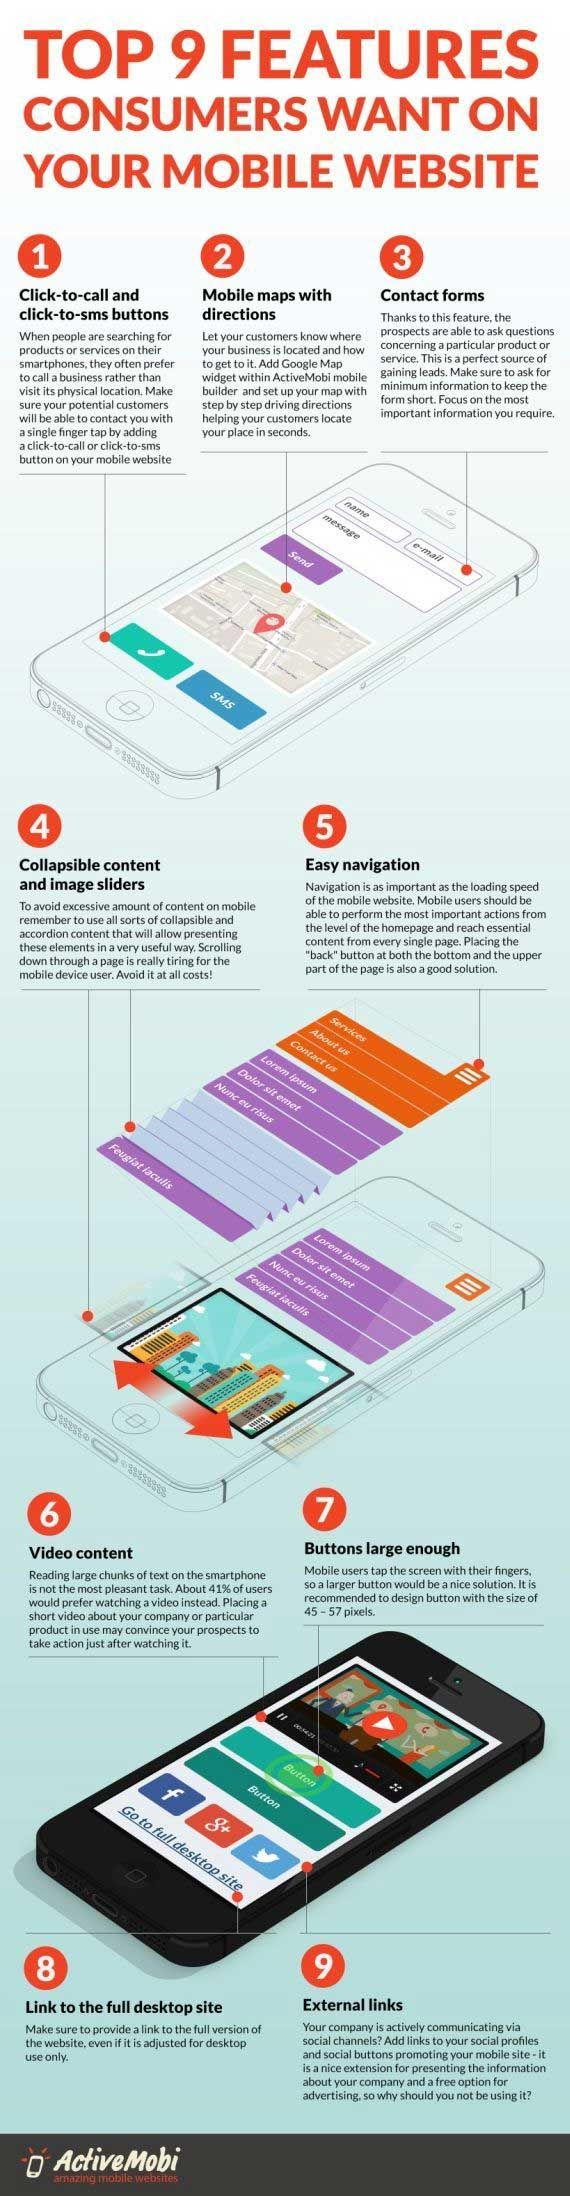 "WEBSITE - Optimize It! ""Top features consumers want on your mobile website. via @websitemagazine""."